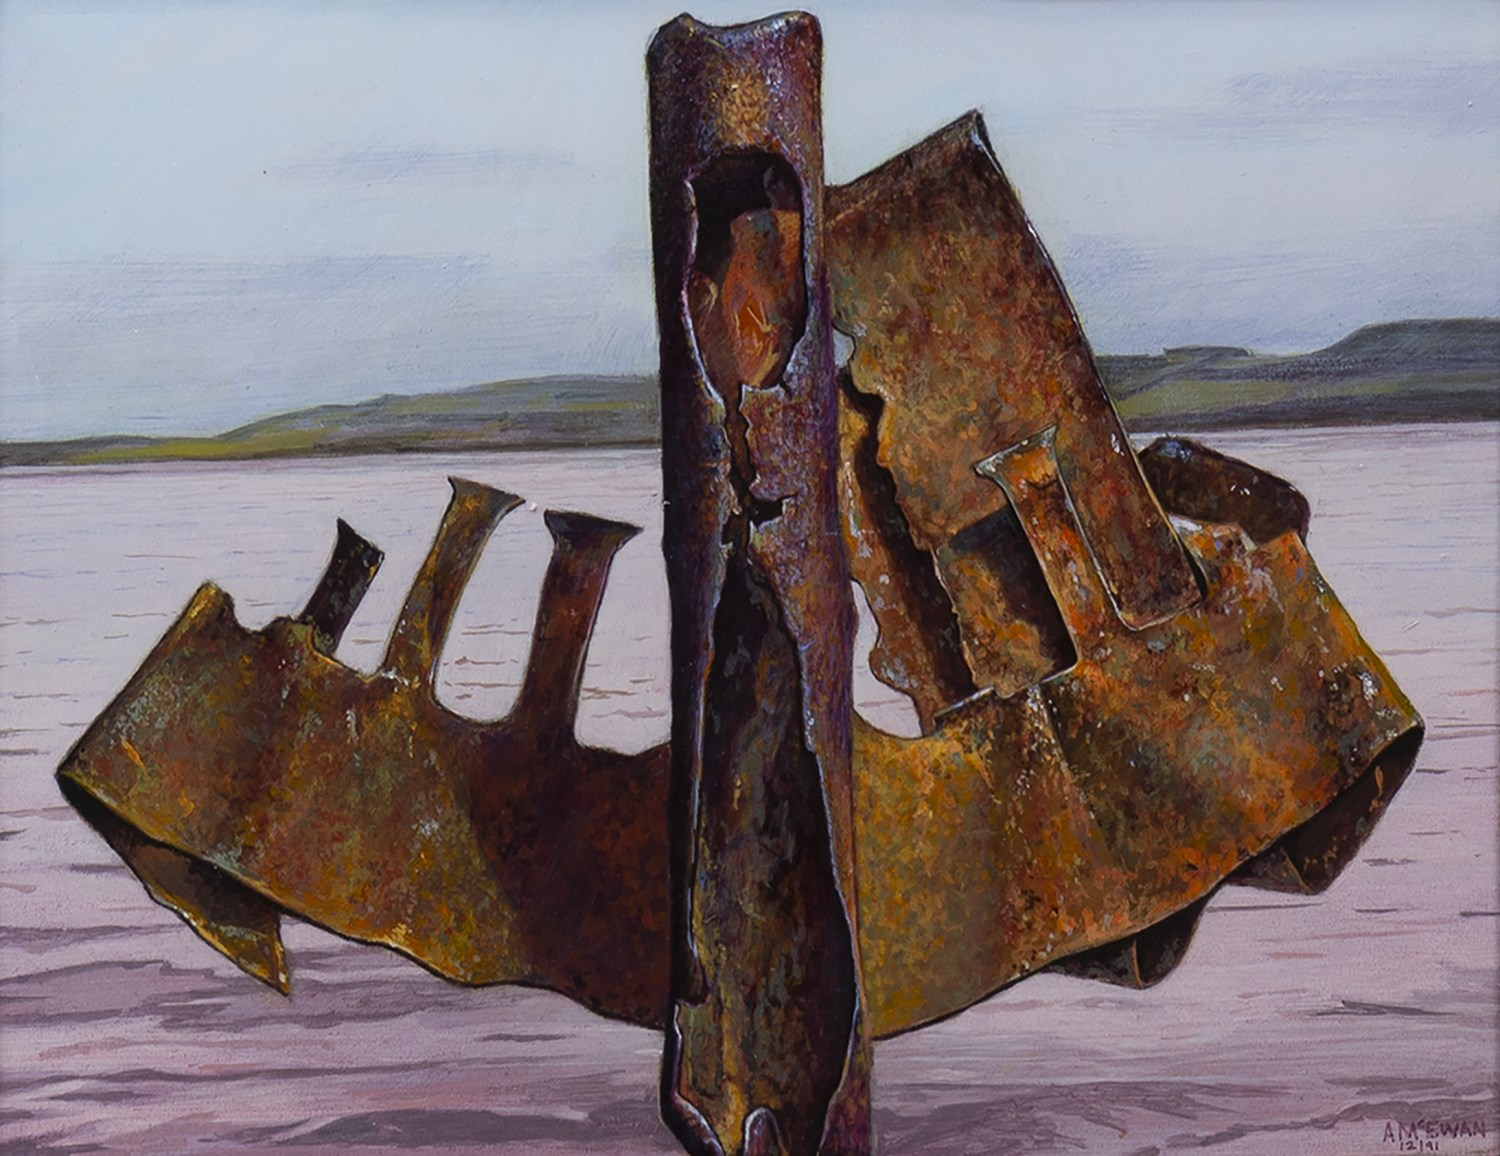 Lot 103 - CORRODING HARMONIOUSLY, A MIXED MEDIA BY ANGUS MCEWAN